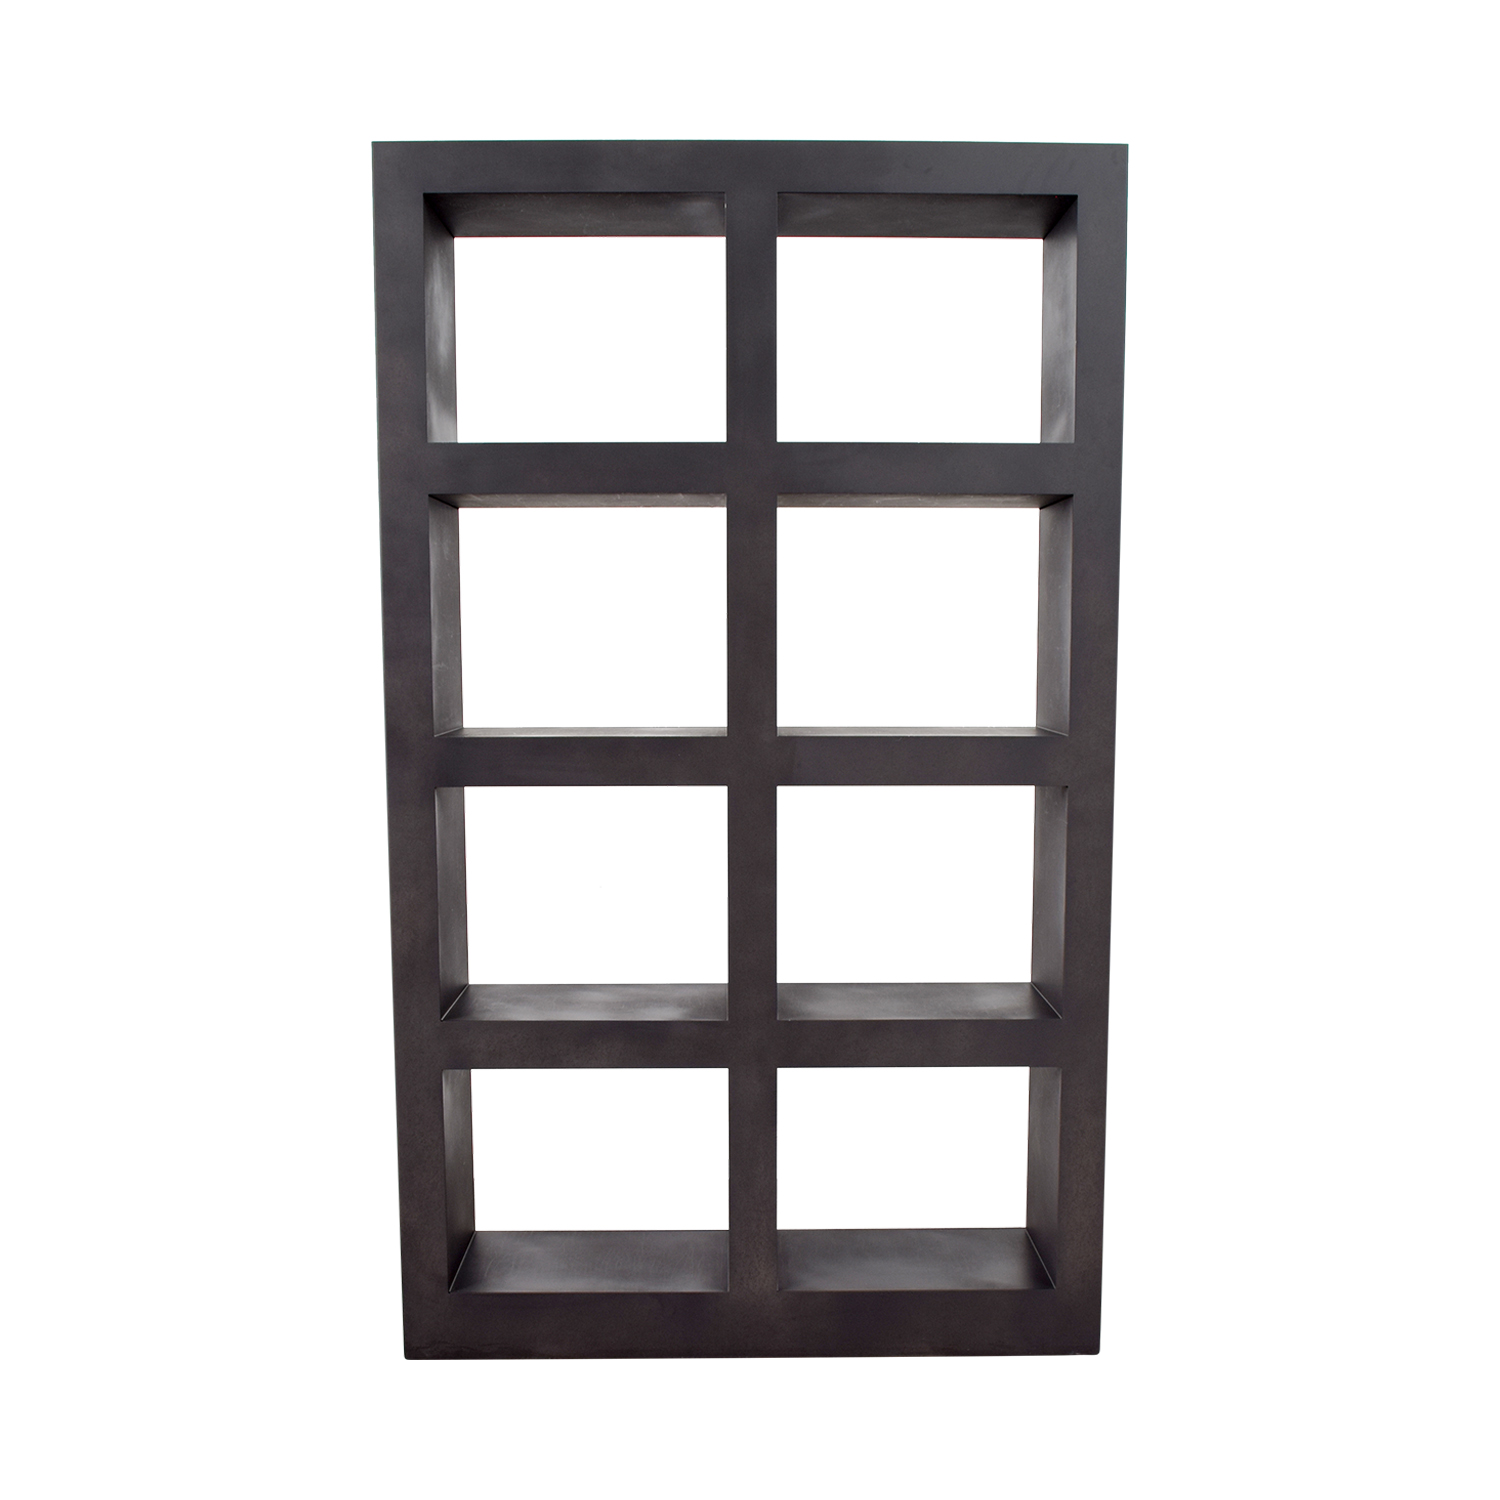 Crate & Barrel Crate & Barrel Shadow Box Bookcase nj